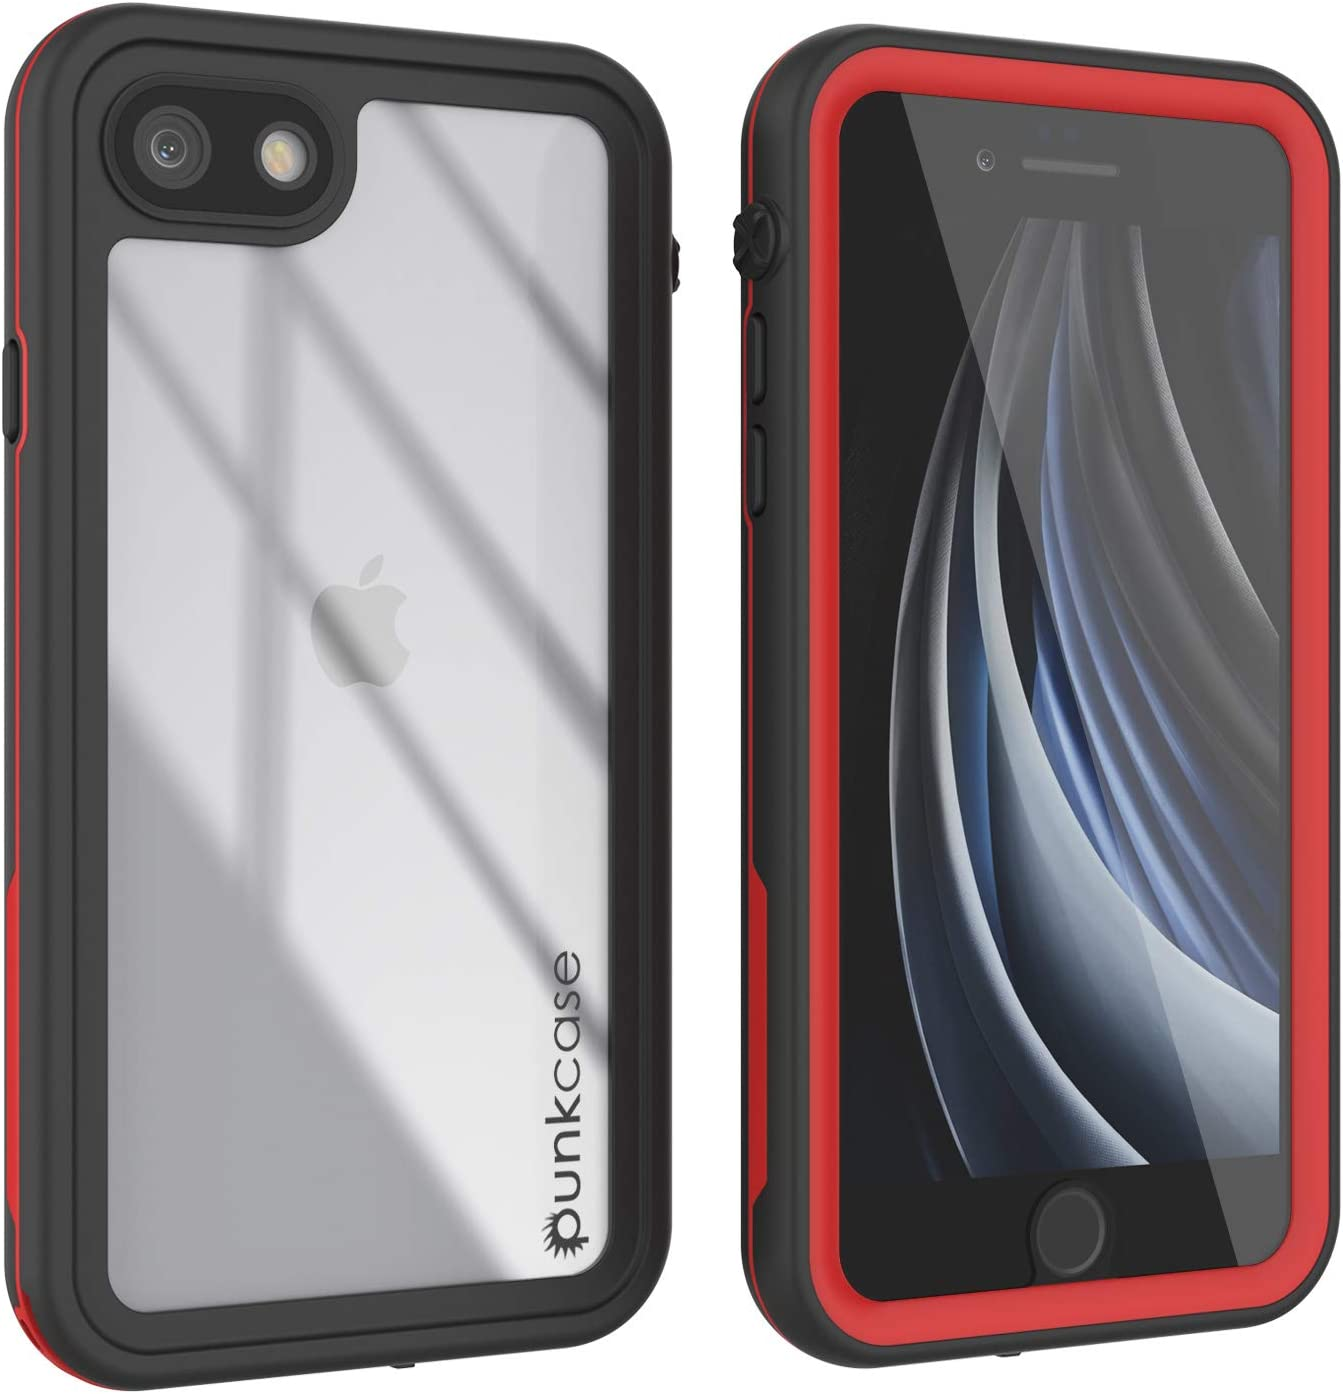 """Punkcase SE 2020 Waterproof Case [Rapture Series] Protective IP68 Certified Full Body Cover W/Built in Screen Protector [Clear Back] for Apple iPhone SE (2020) (4.7"""") (Red)"""